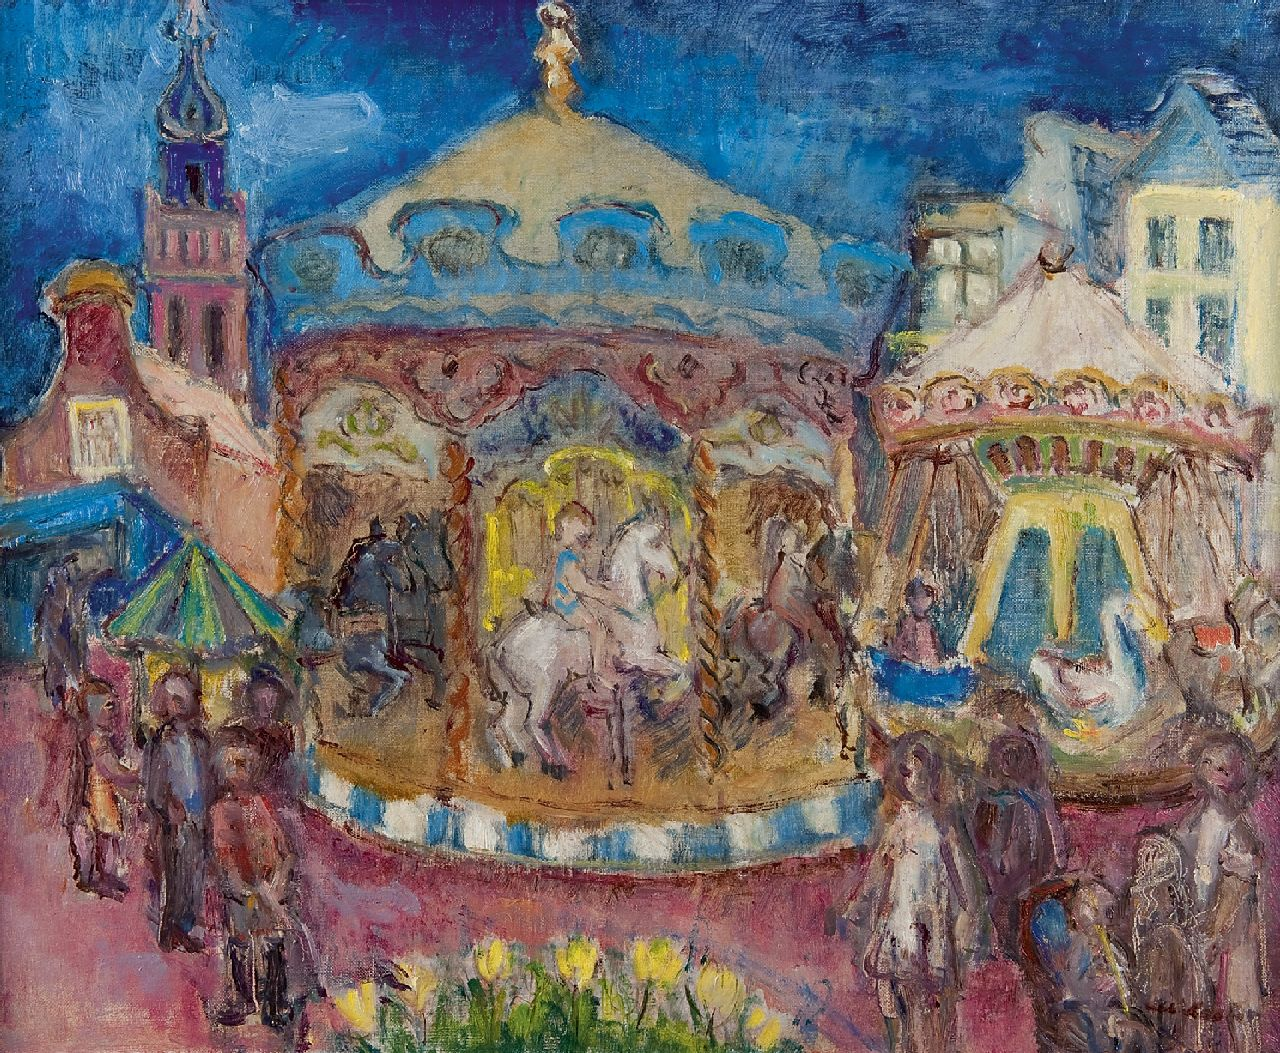 Albert Loots | The Merry-go-round, oil on canvas, 54.0 x 65.1 cm, signed l.r. and dated Cagnes sur Mer november 1932 verso